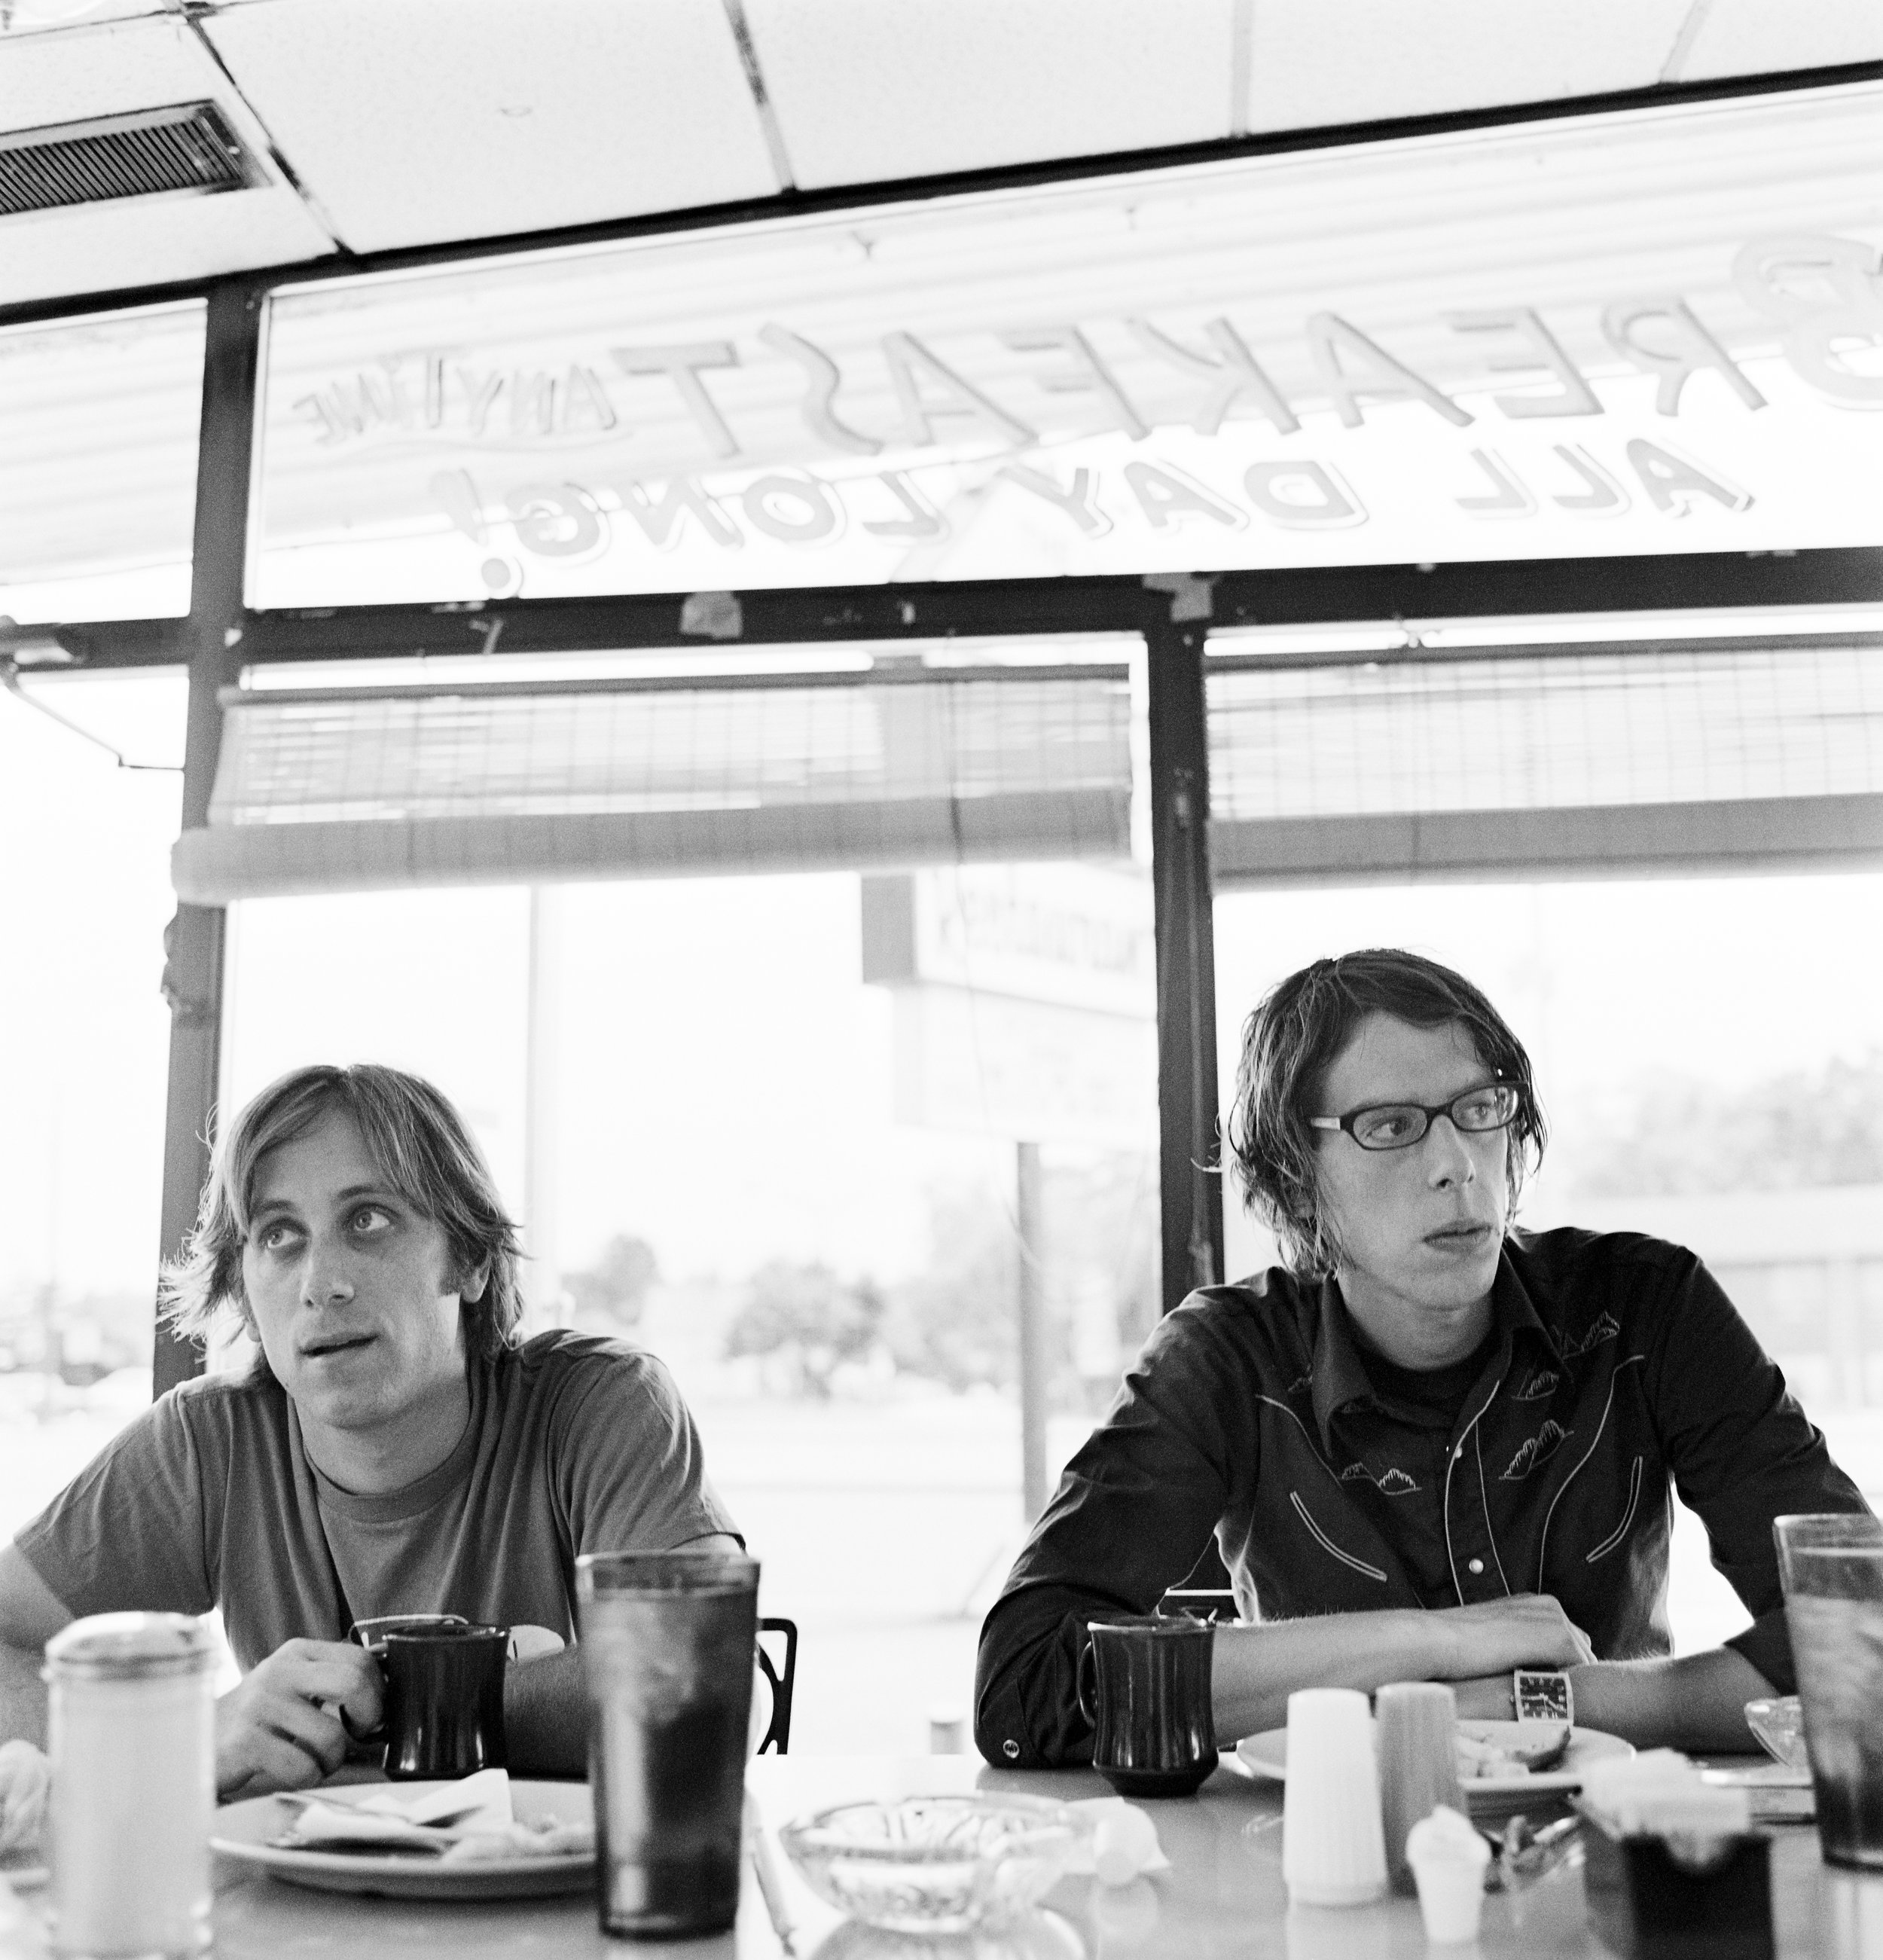 The Black Keys, Akron, 2004